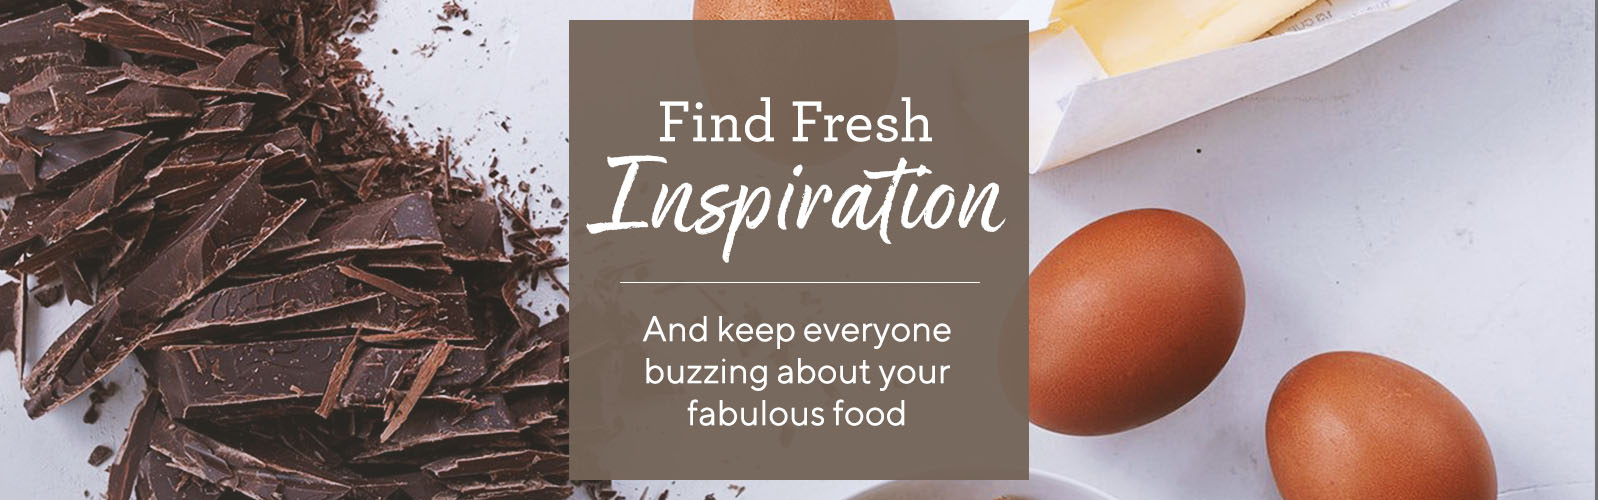 Find Fresh Inspiration  And keep everyone buzzing about your fabulous food